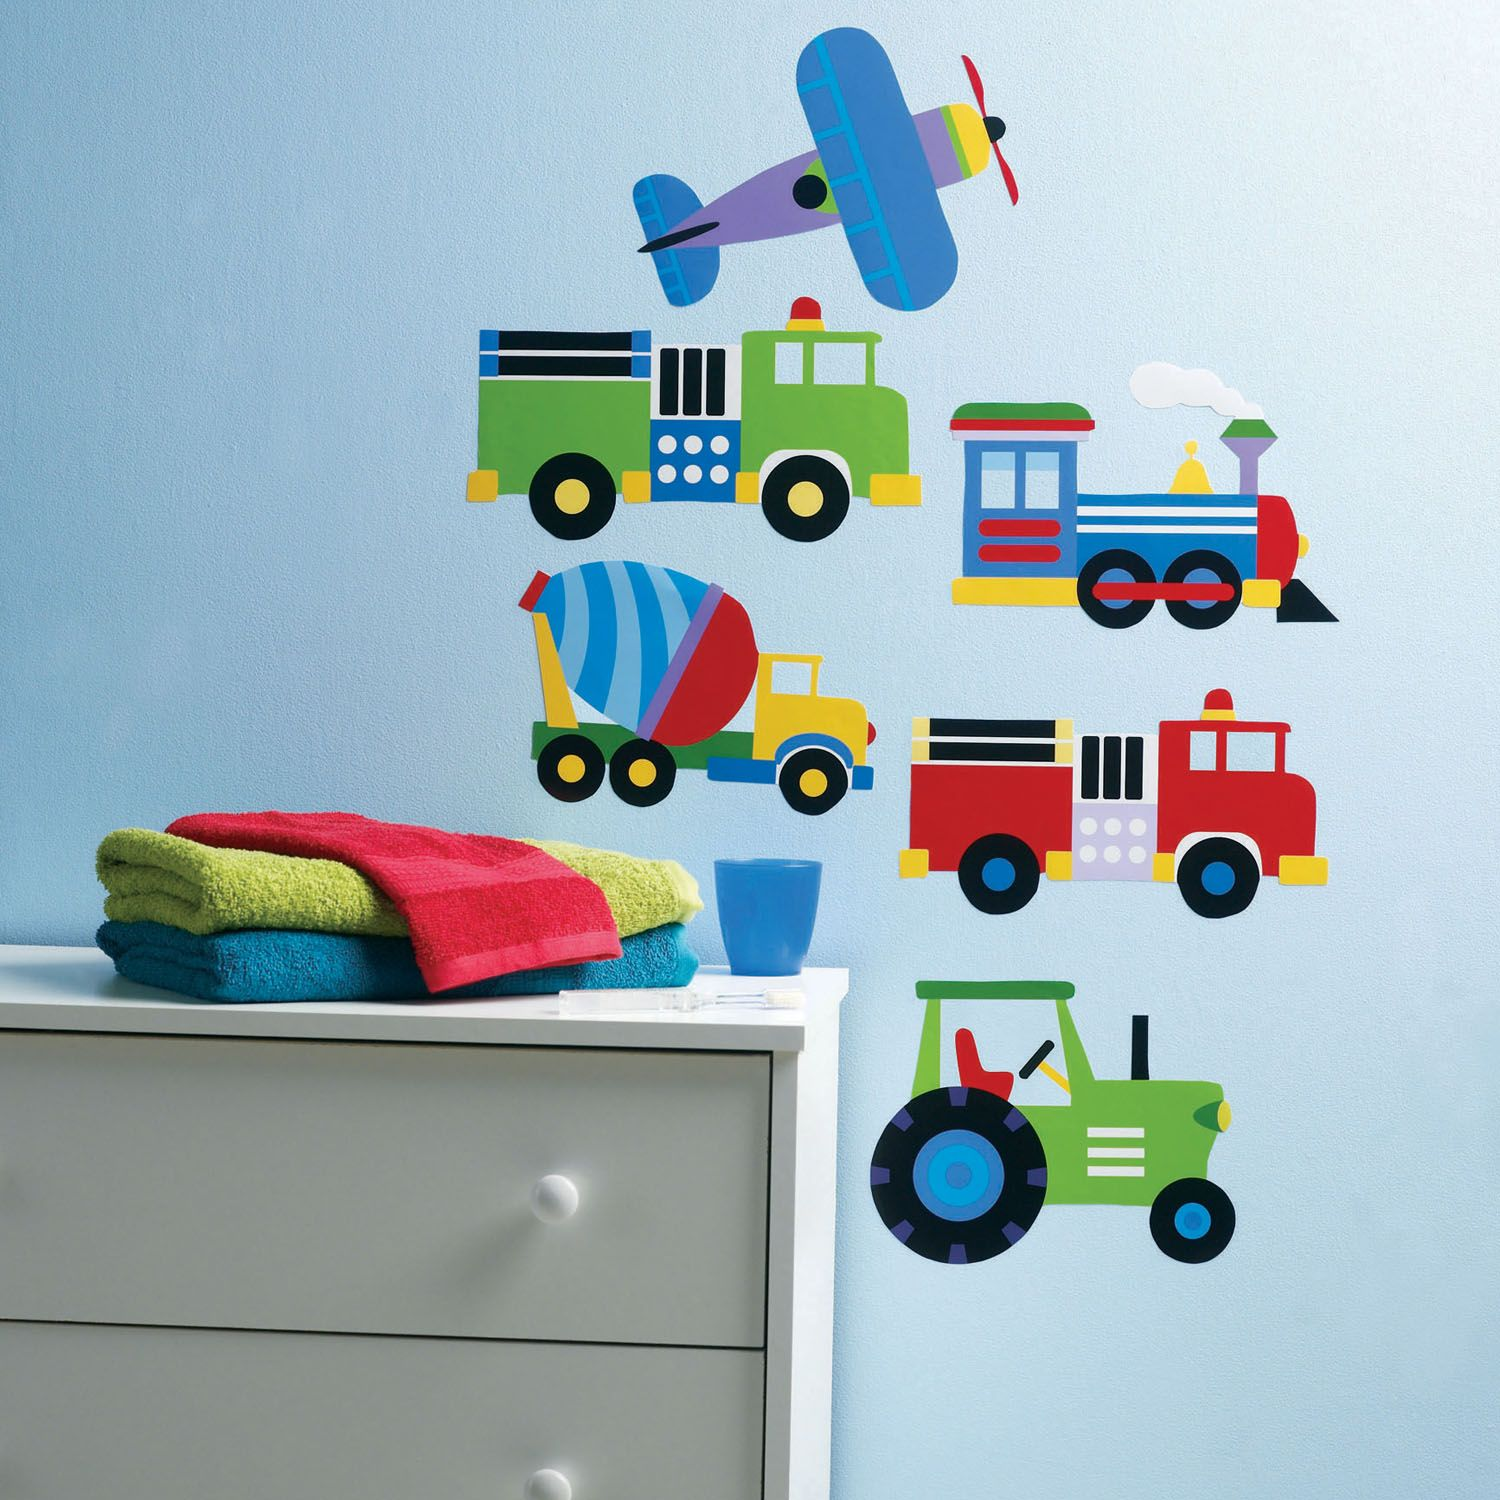 Planes And Trains Wall Stickers Next Day Delivery Wallies Sticker Disney Decor Kit Walldesign Decals